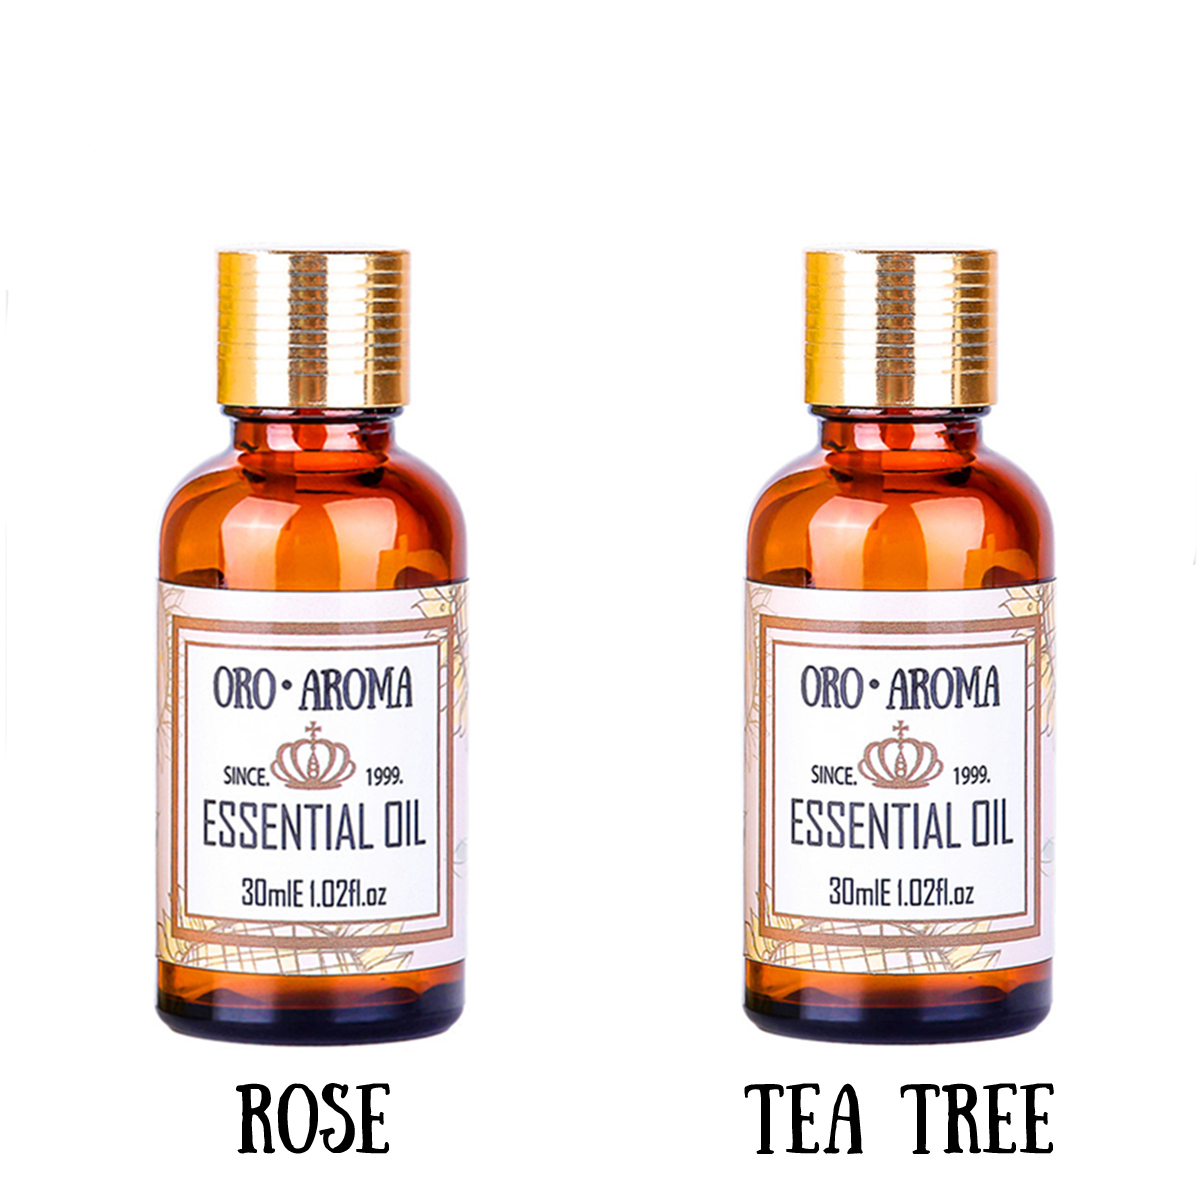 Famous brand oroaroma Whitening and freckle removing sets Rose essential oil+Tea tree essential oil body Massage Oil spa 30ml*2 tea tree essential oil australian tea tree oil acne oil control whitening anti inflammatory oil10ml acne scar removing essential